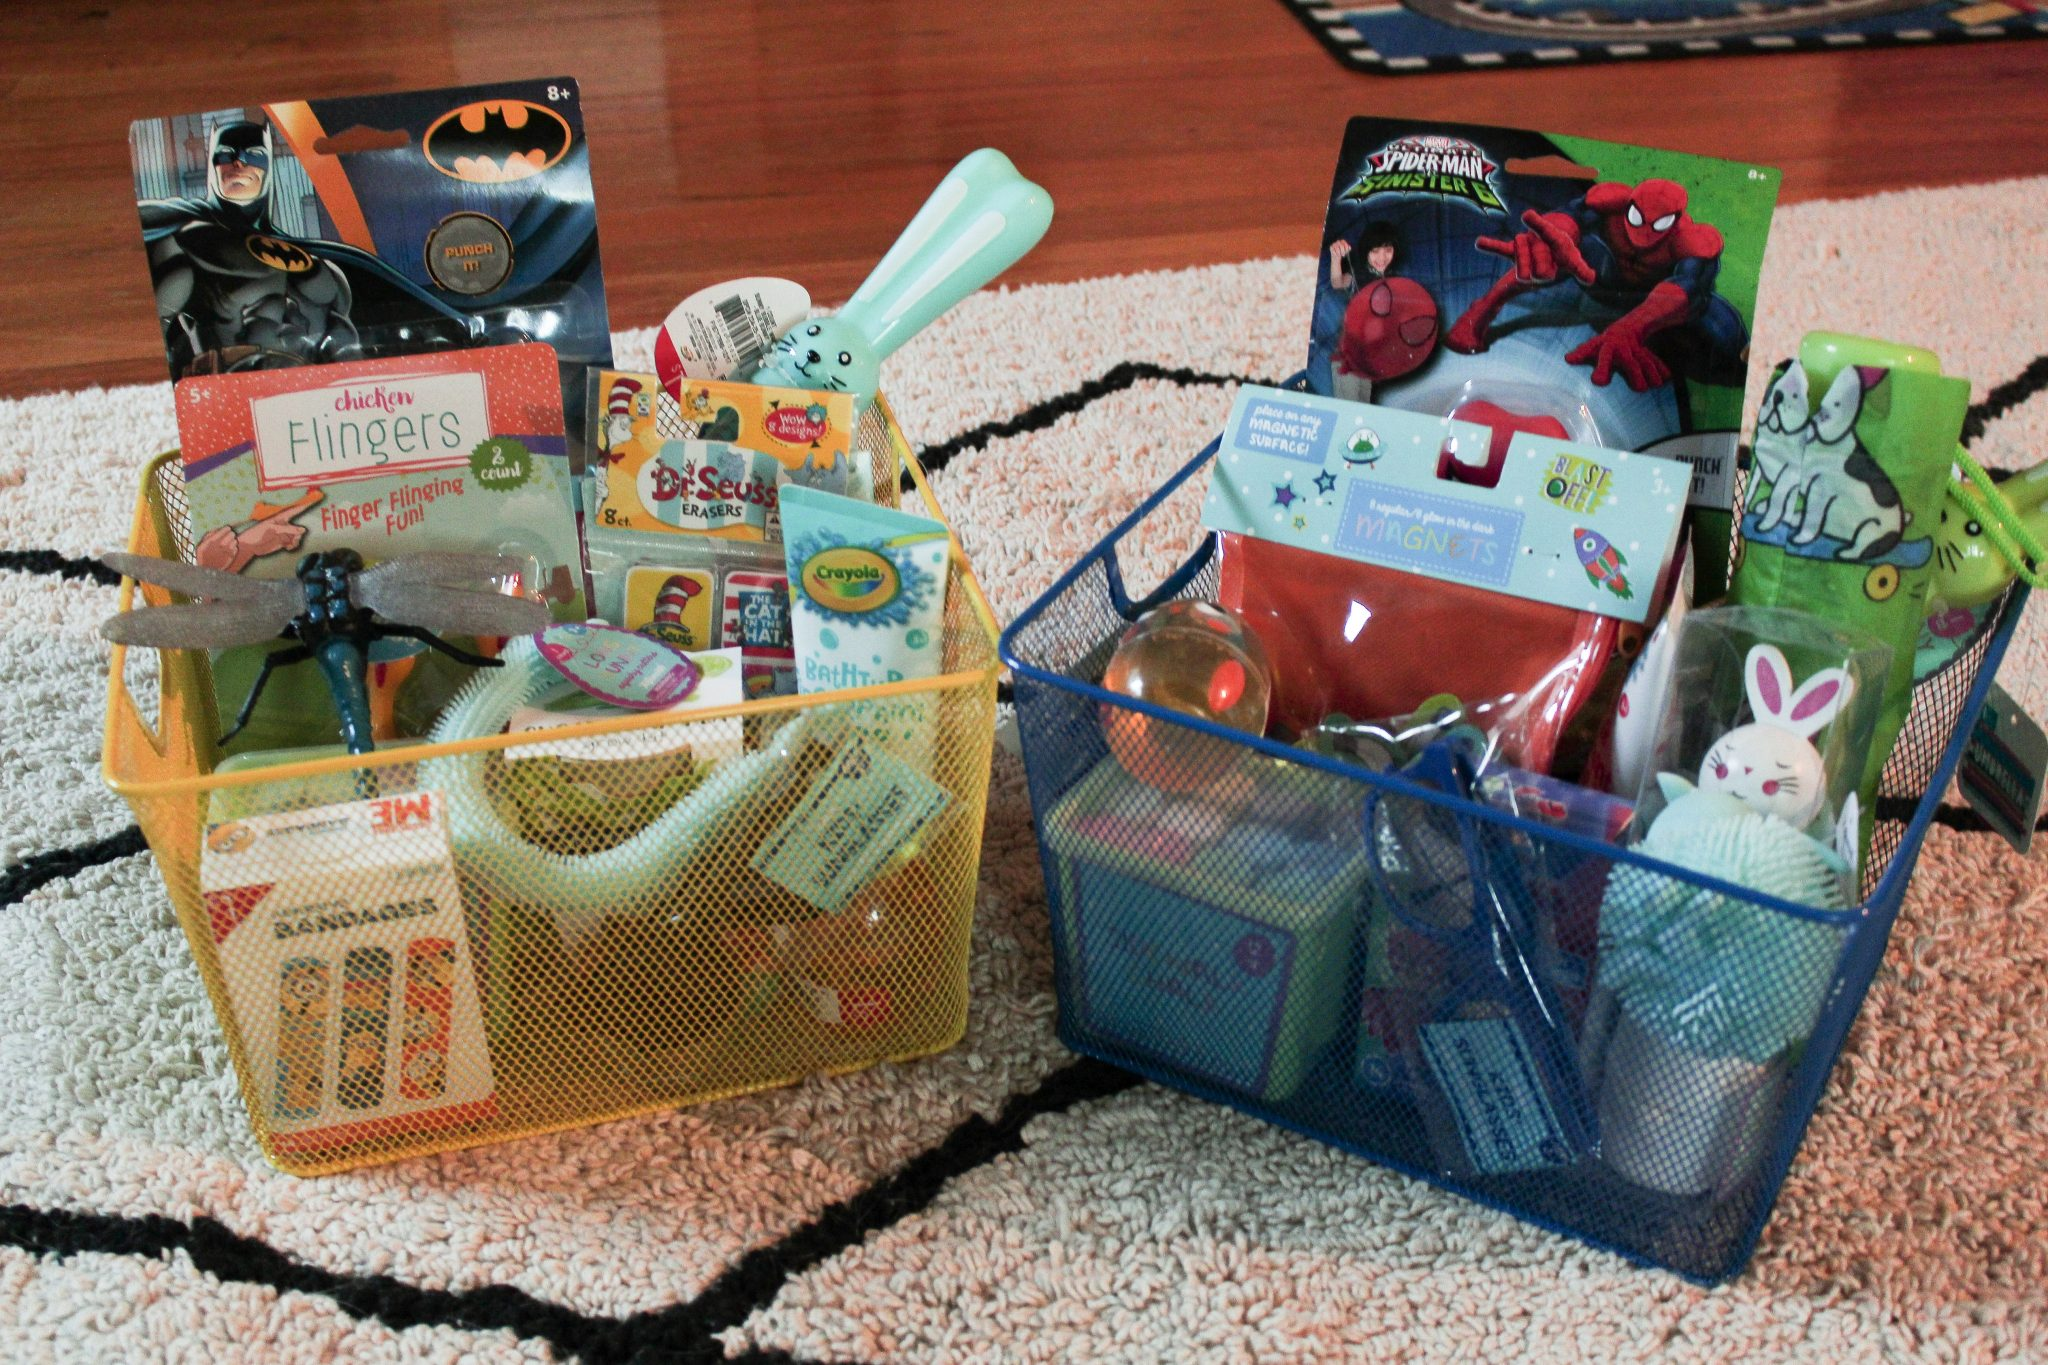 89+ Candy-Free Easter Basket Ideas For Kids - ThisTinyNest.com #easterbasket #easter #candyfree #candyfreeeaster